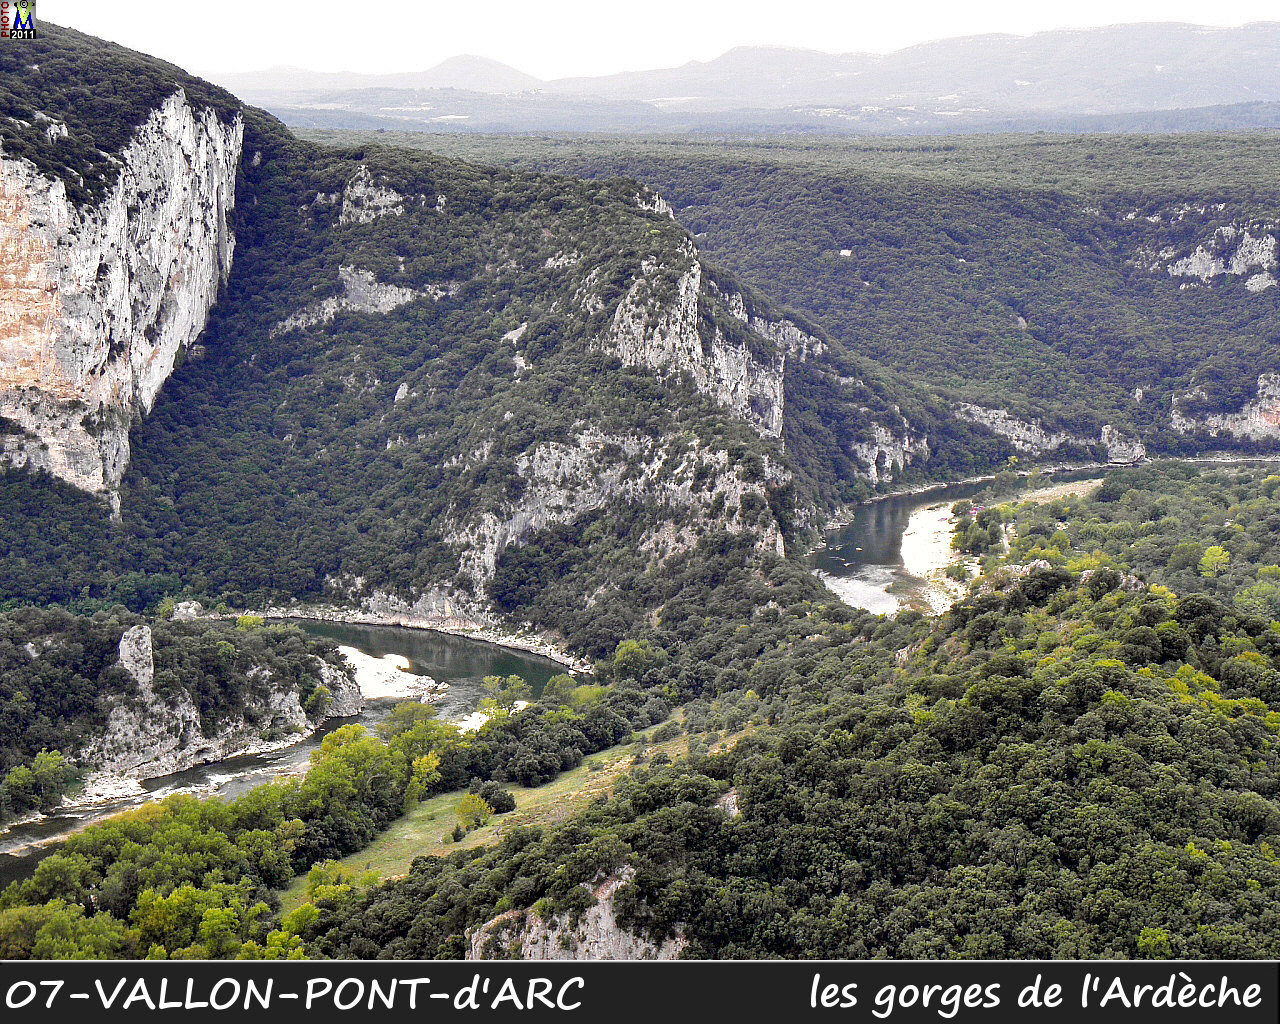 07VALLON-PONT-ARC_gorges_130.jpg